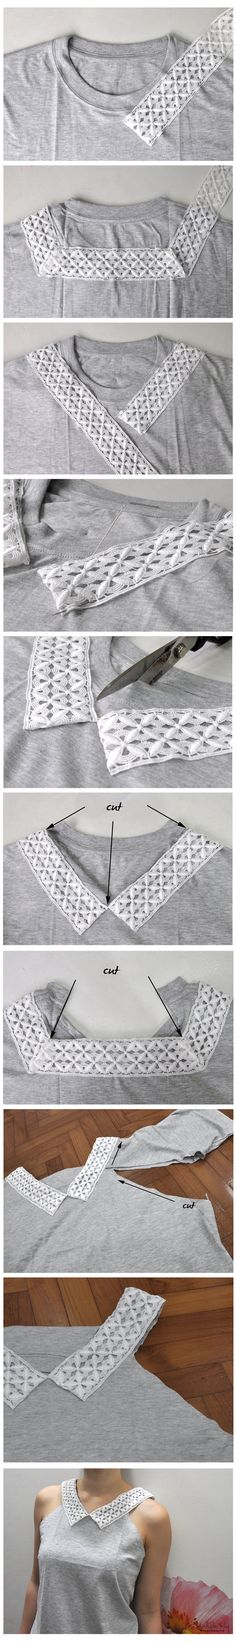 Easy Upcycled Tee | Easy Top DIY Tutorial from T Shirt by DIY Ready at diyready.com/diy-clothes-sewing-blouses-tutorial/                                                                                                                                                                                 More